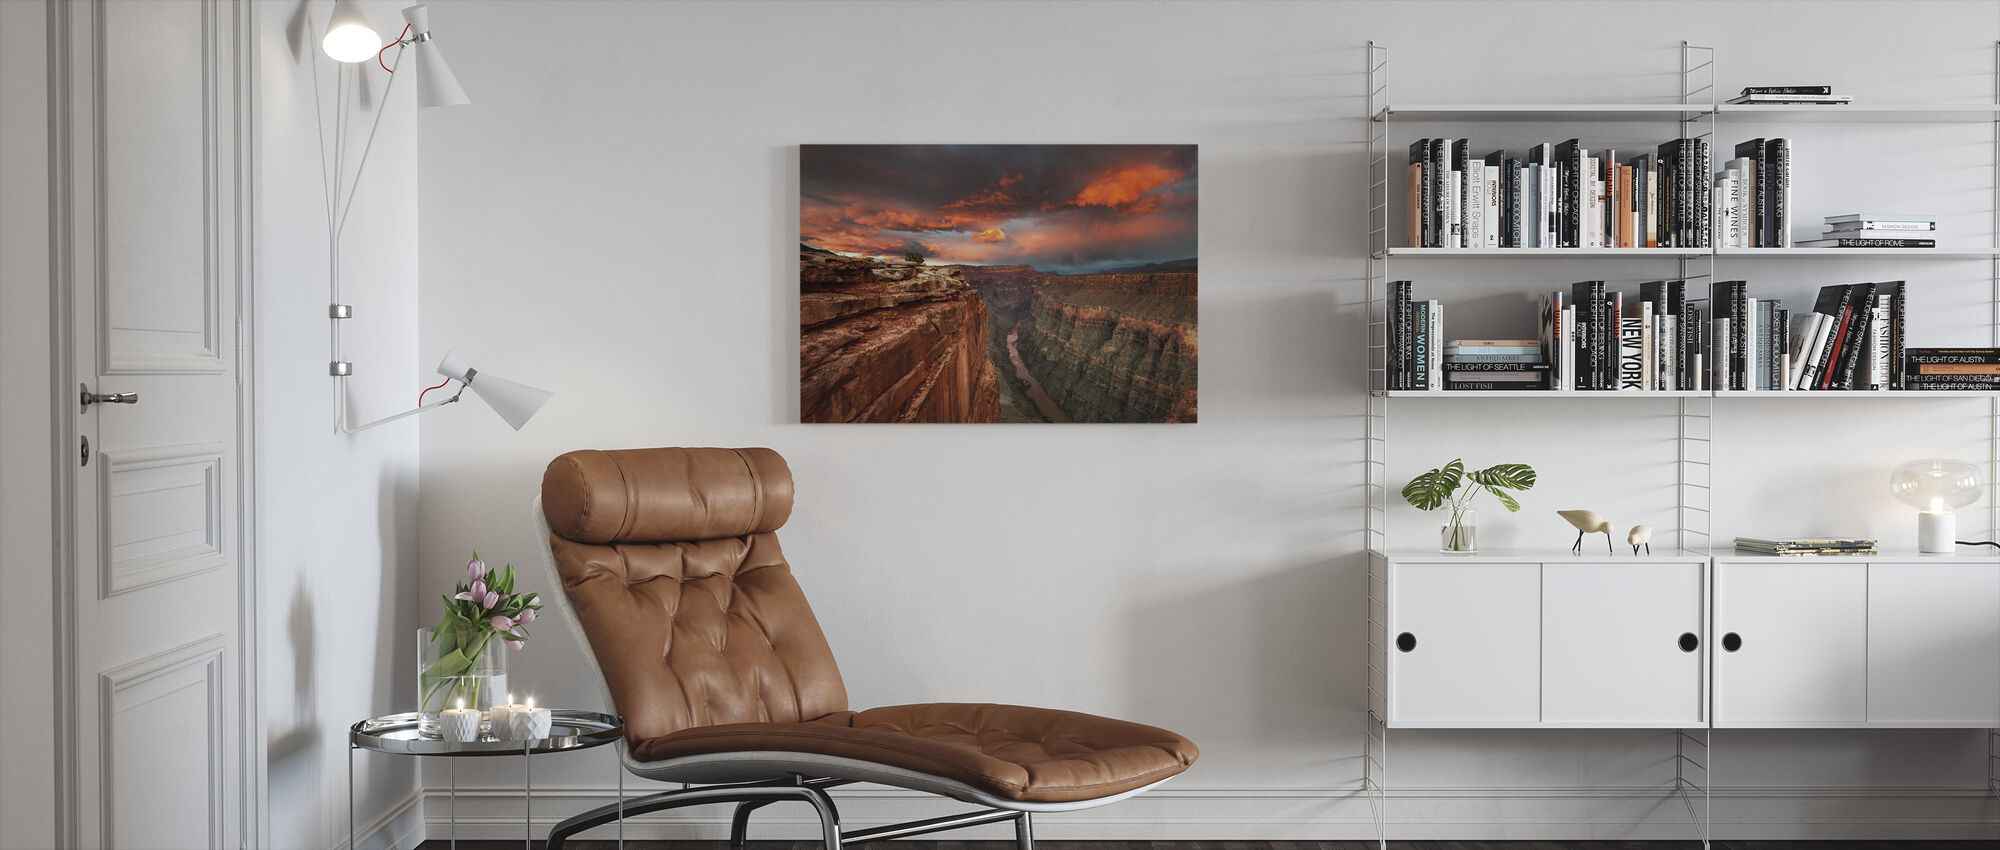 Redemption - Canvas print - Living Room